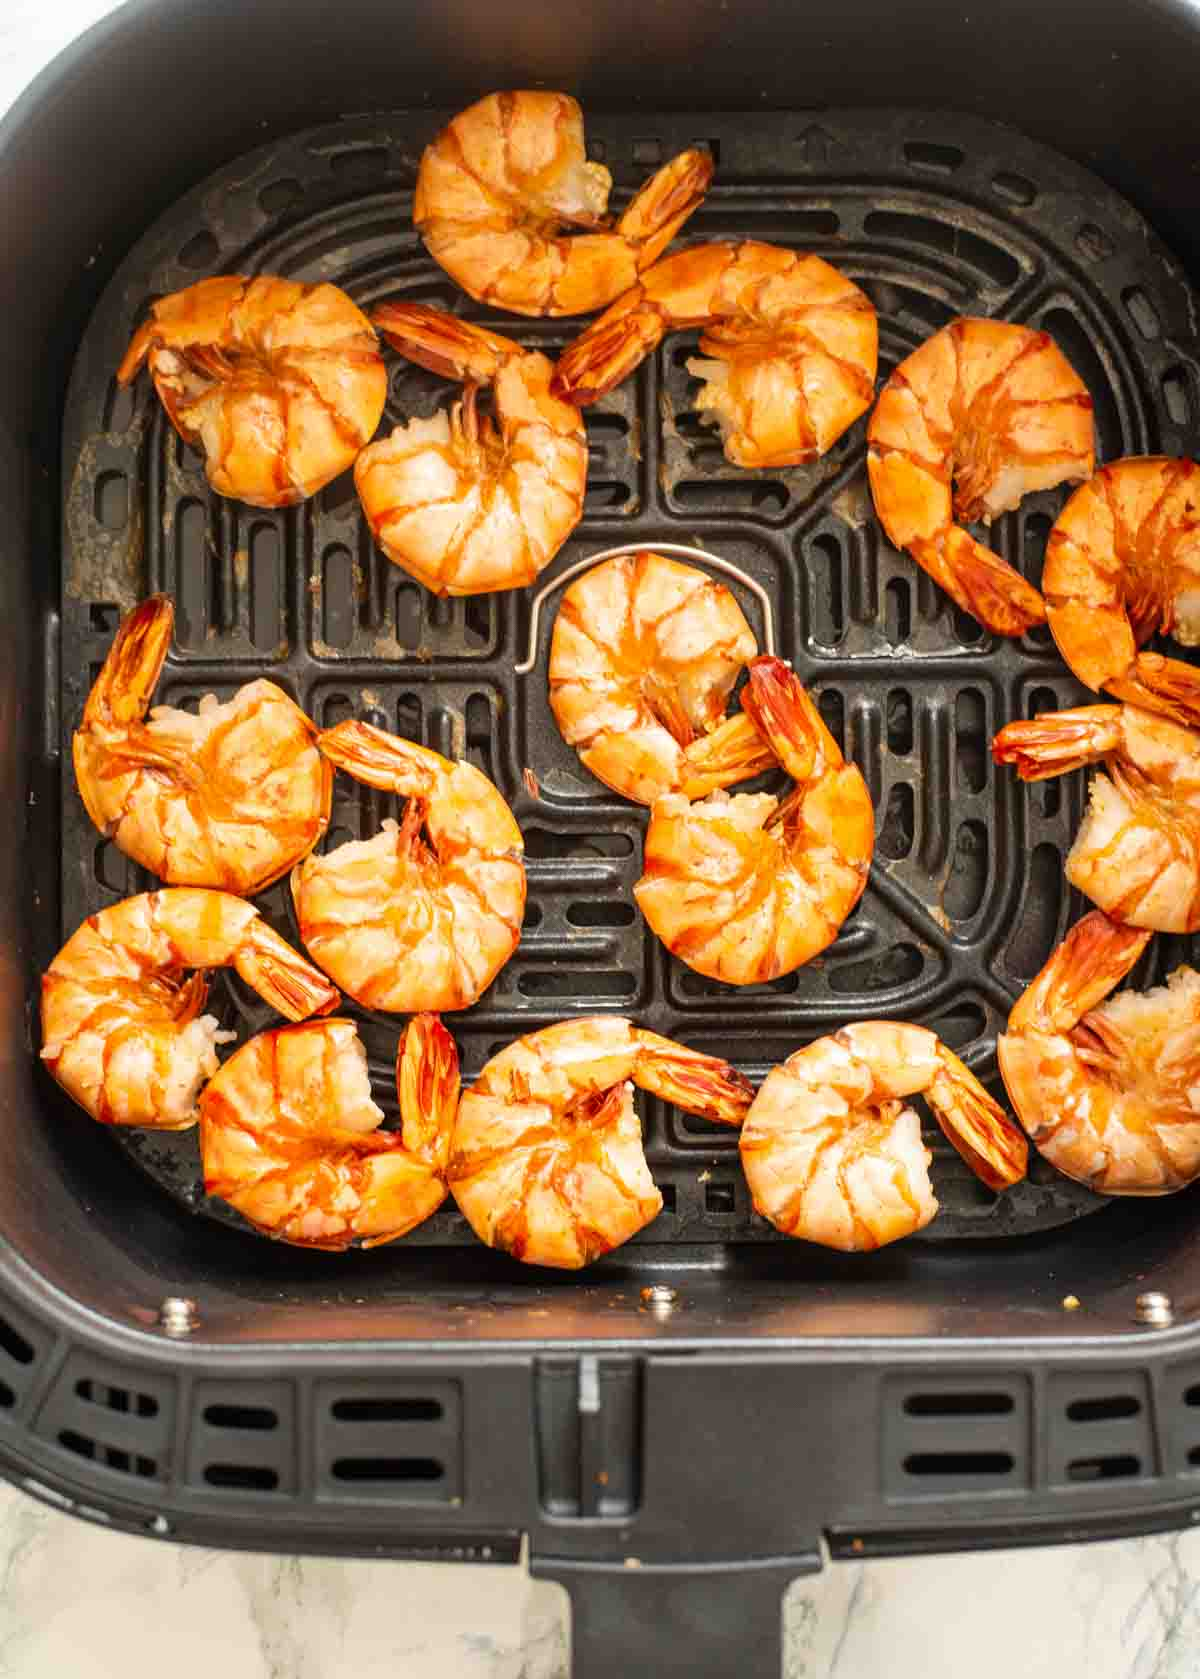 cooked shrimp in an Air Fryer basket